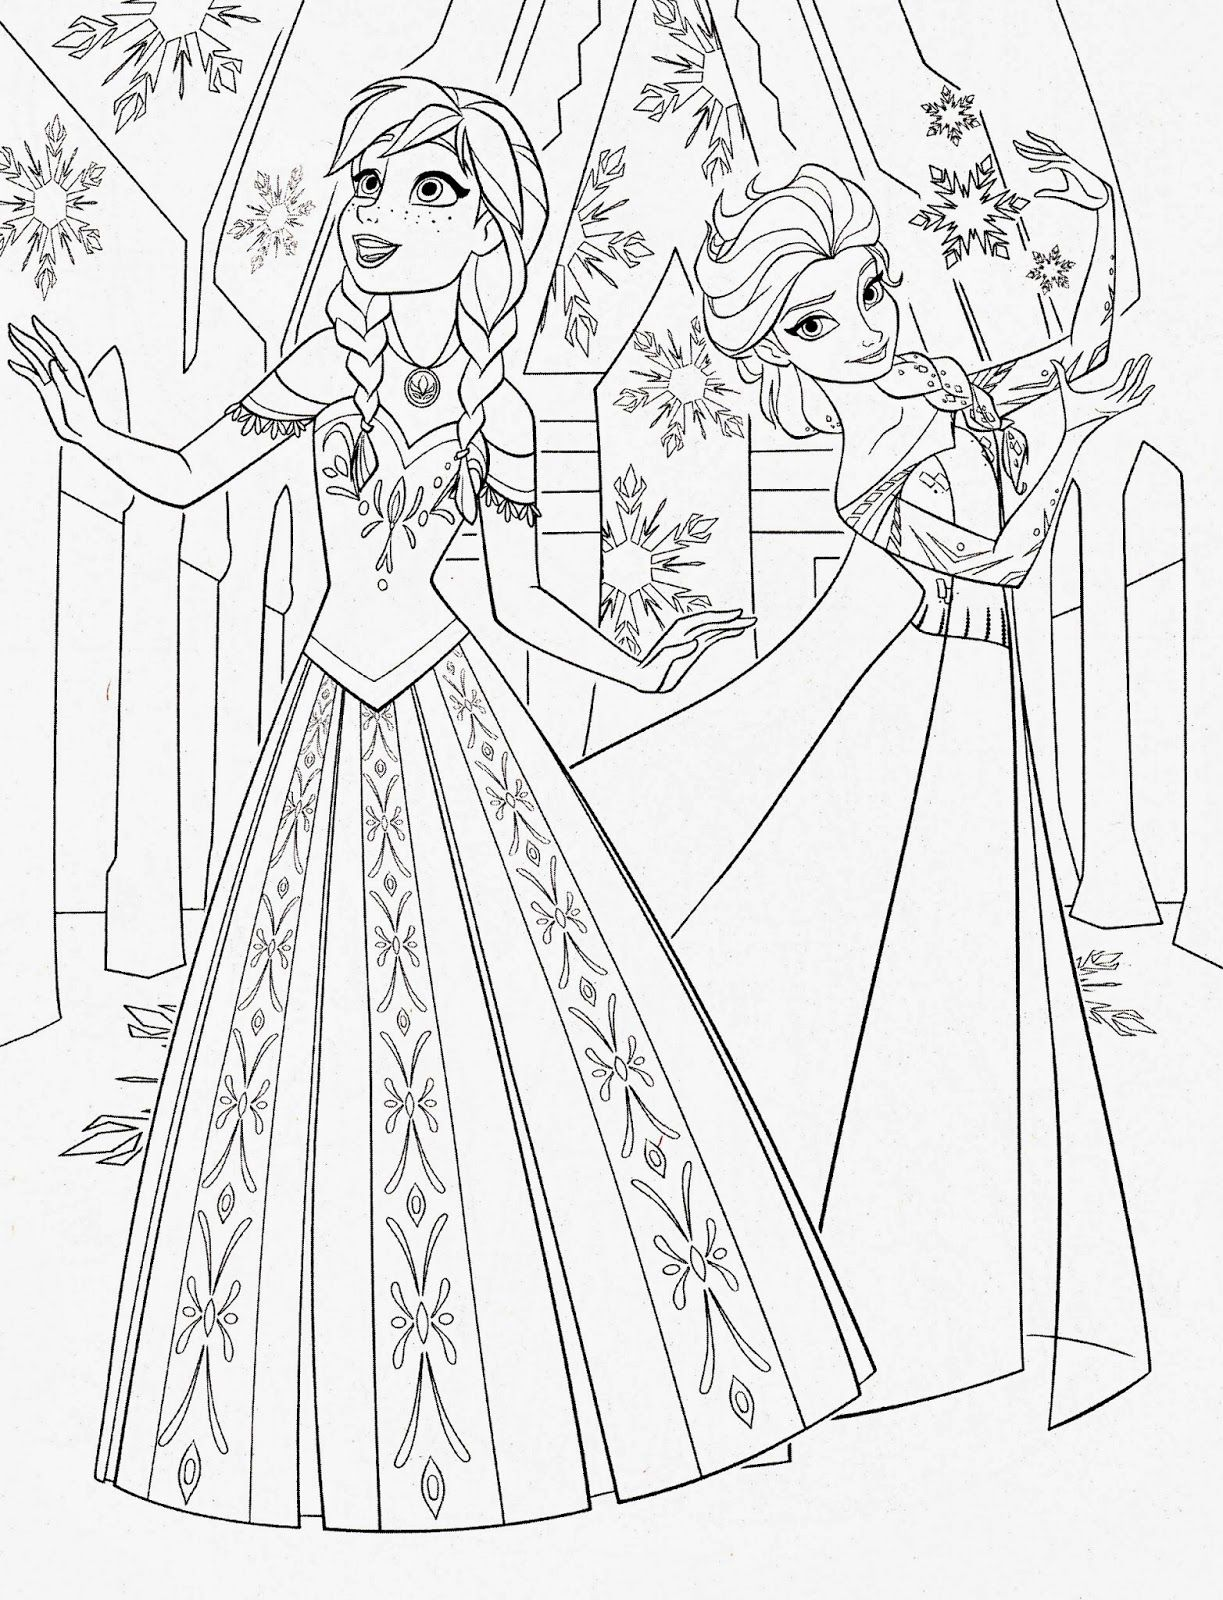 Ausmalbilder Erwachsene Disney : Frozen Coloring Pages Fun Frozen Coloring Pages Disney